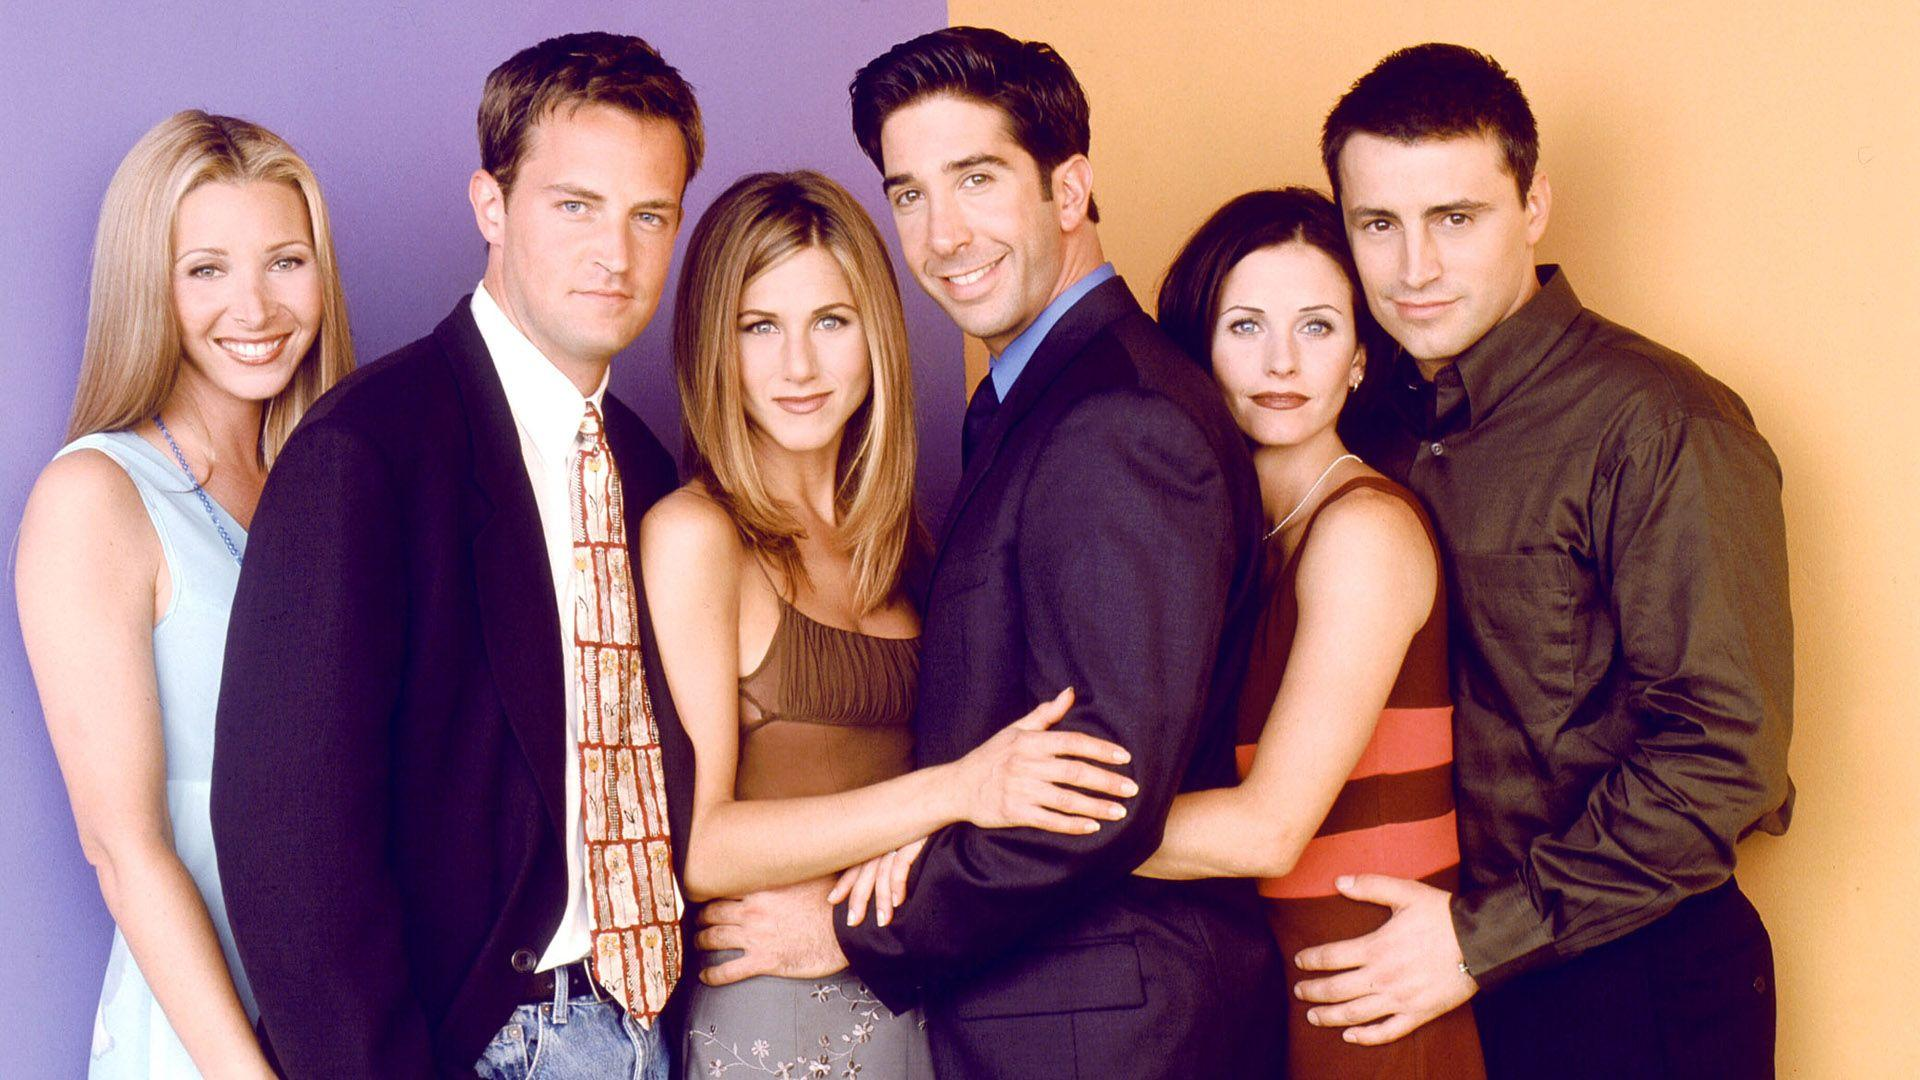 Friends Wallpapers HD